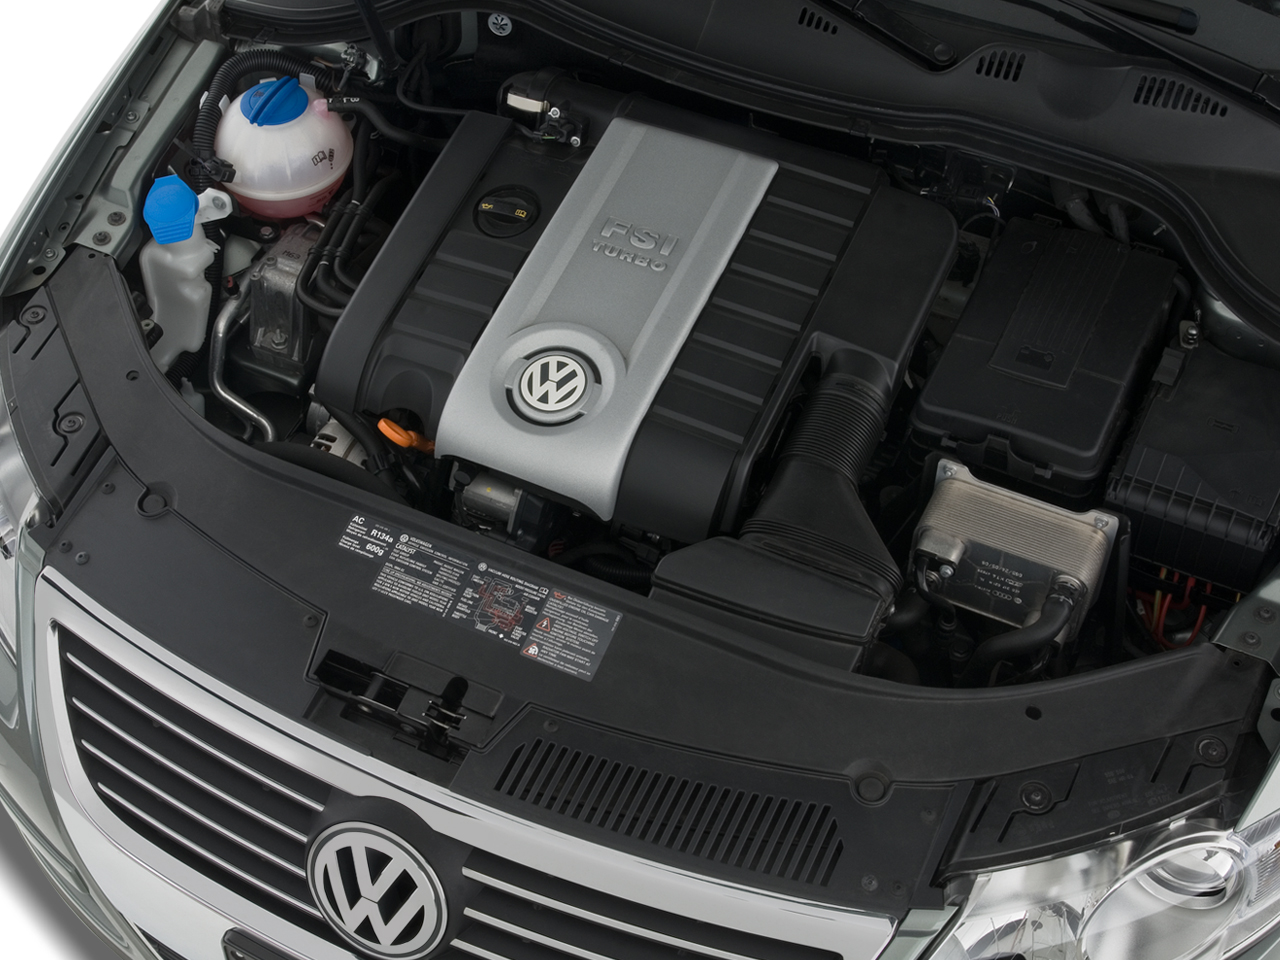 Vw Moving Factory Site Of Upcoming Minicar 2013 Passat Engine Diagram 42 250